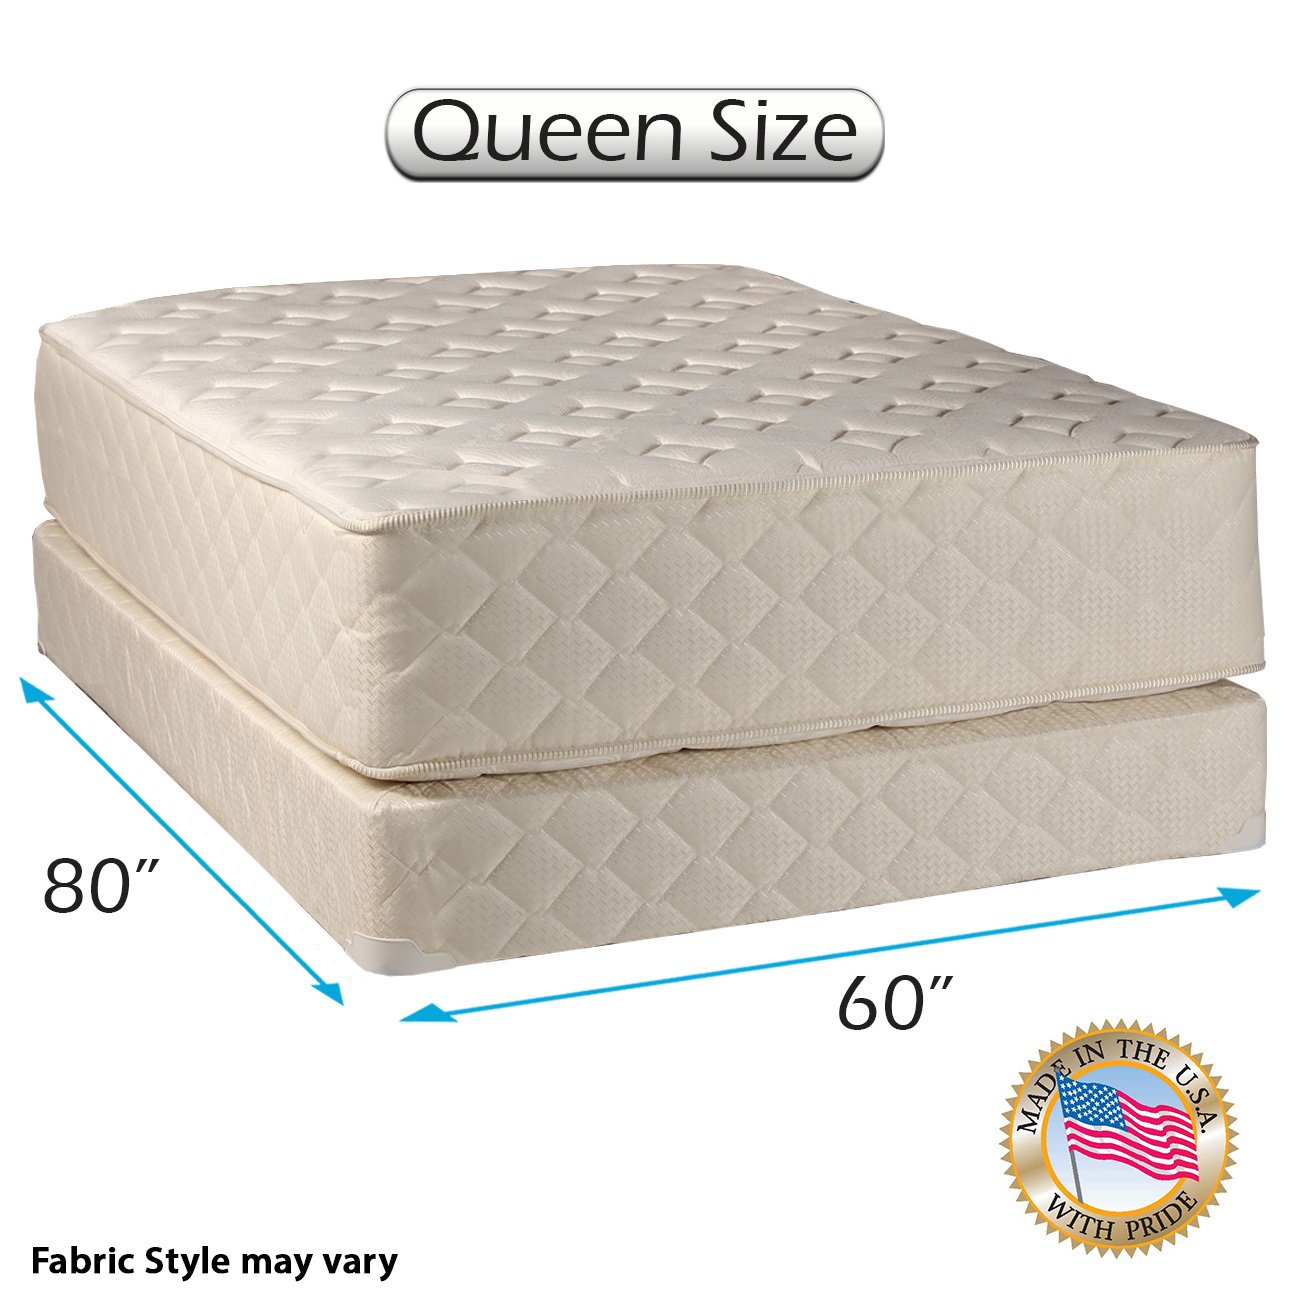 set glengate image go com sleeper serta is mat elite roomstogo mattress sets rooms perfect br to queen